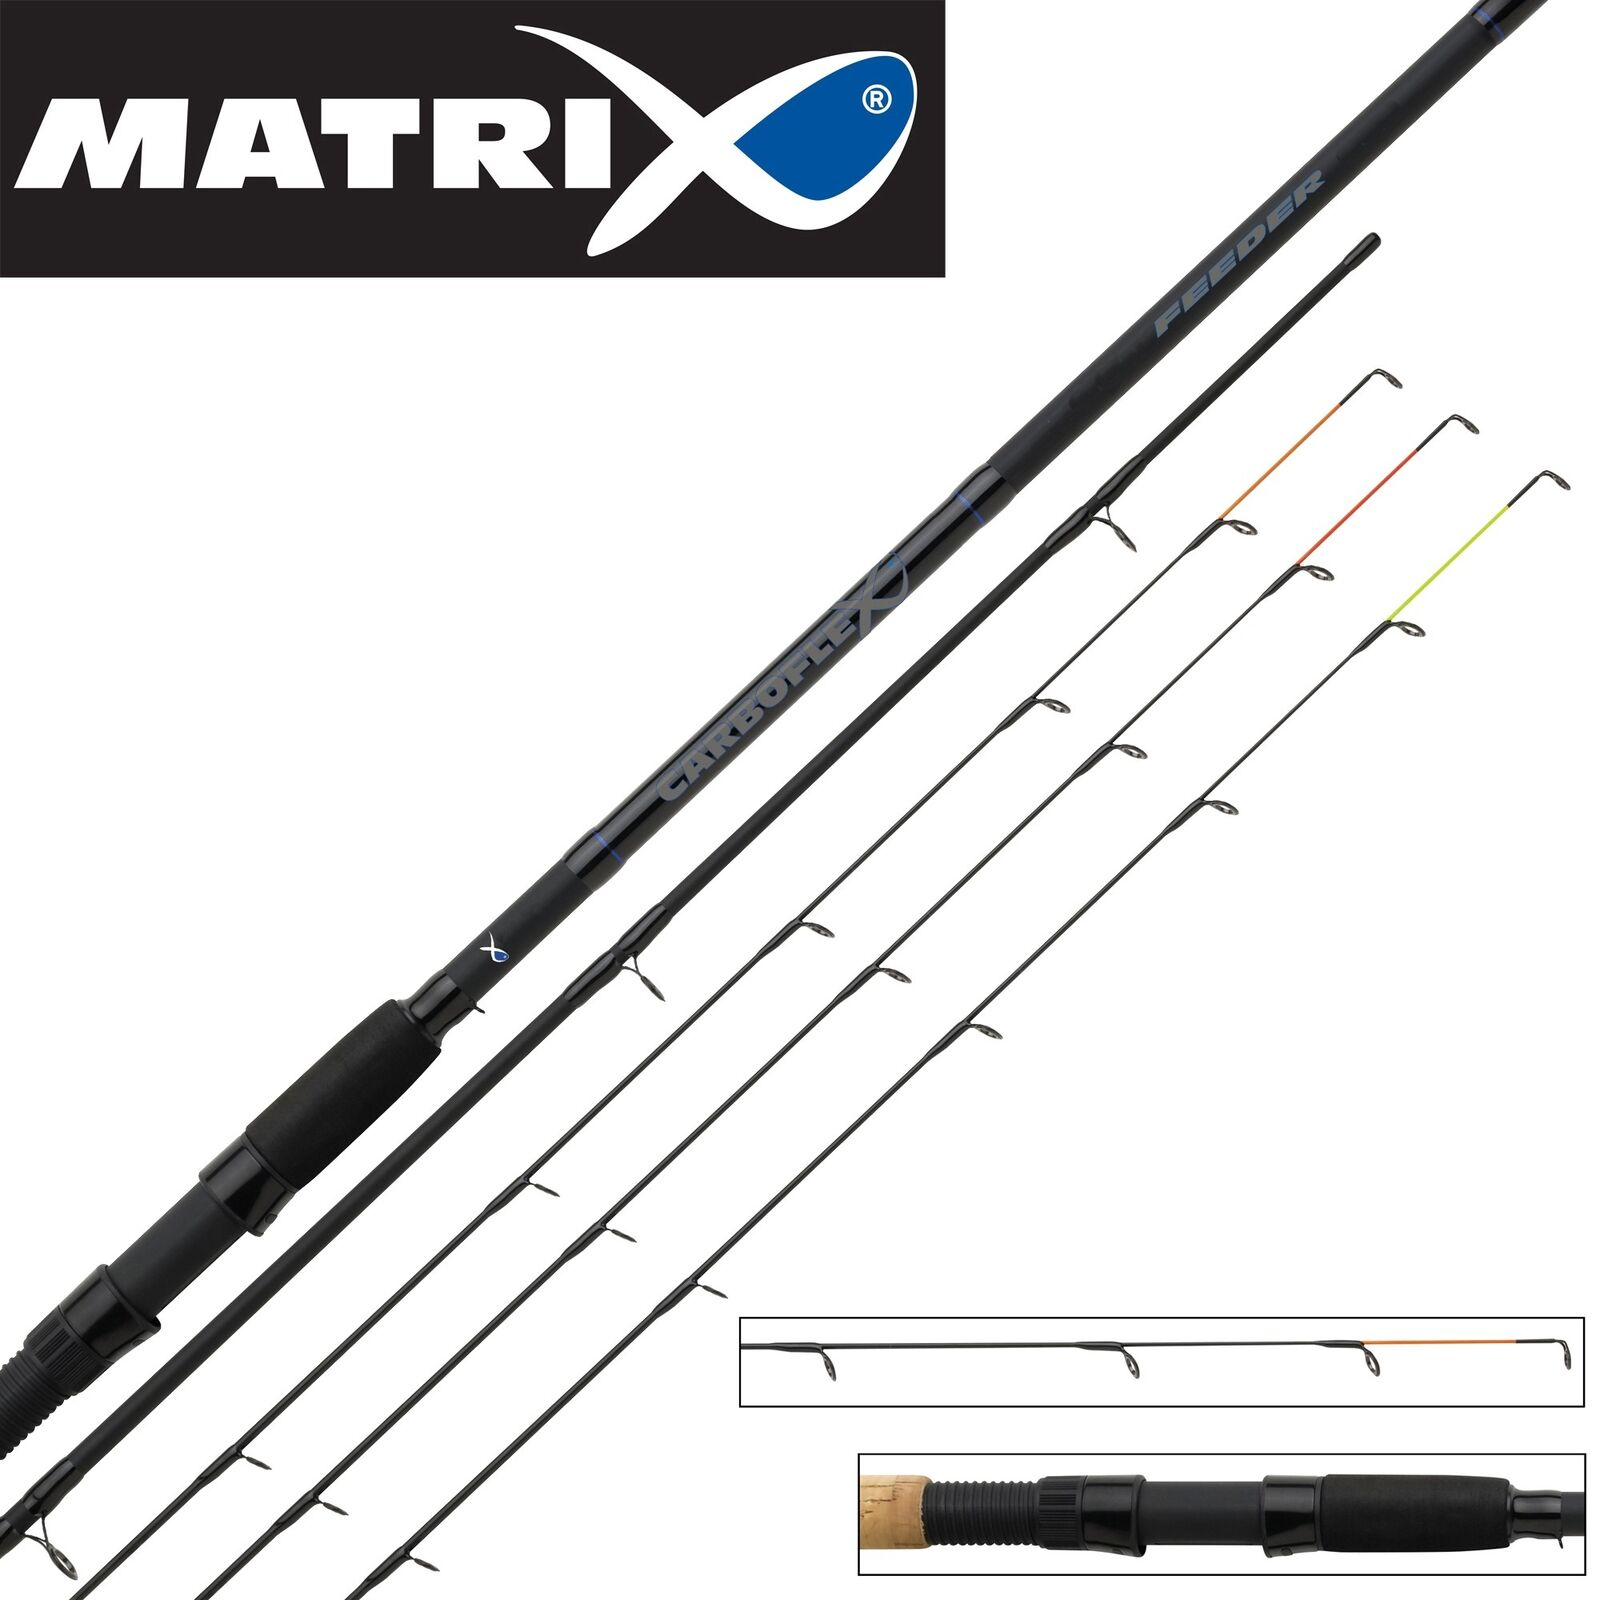 Fox Matrix Carboflex Feeder Rod 3,90m 150g - Feederrute, Angelrute zum Feedern